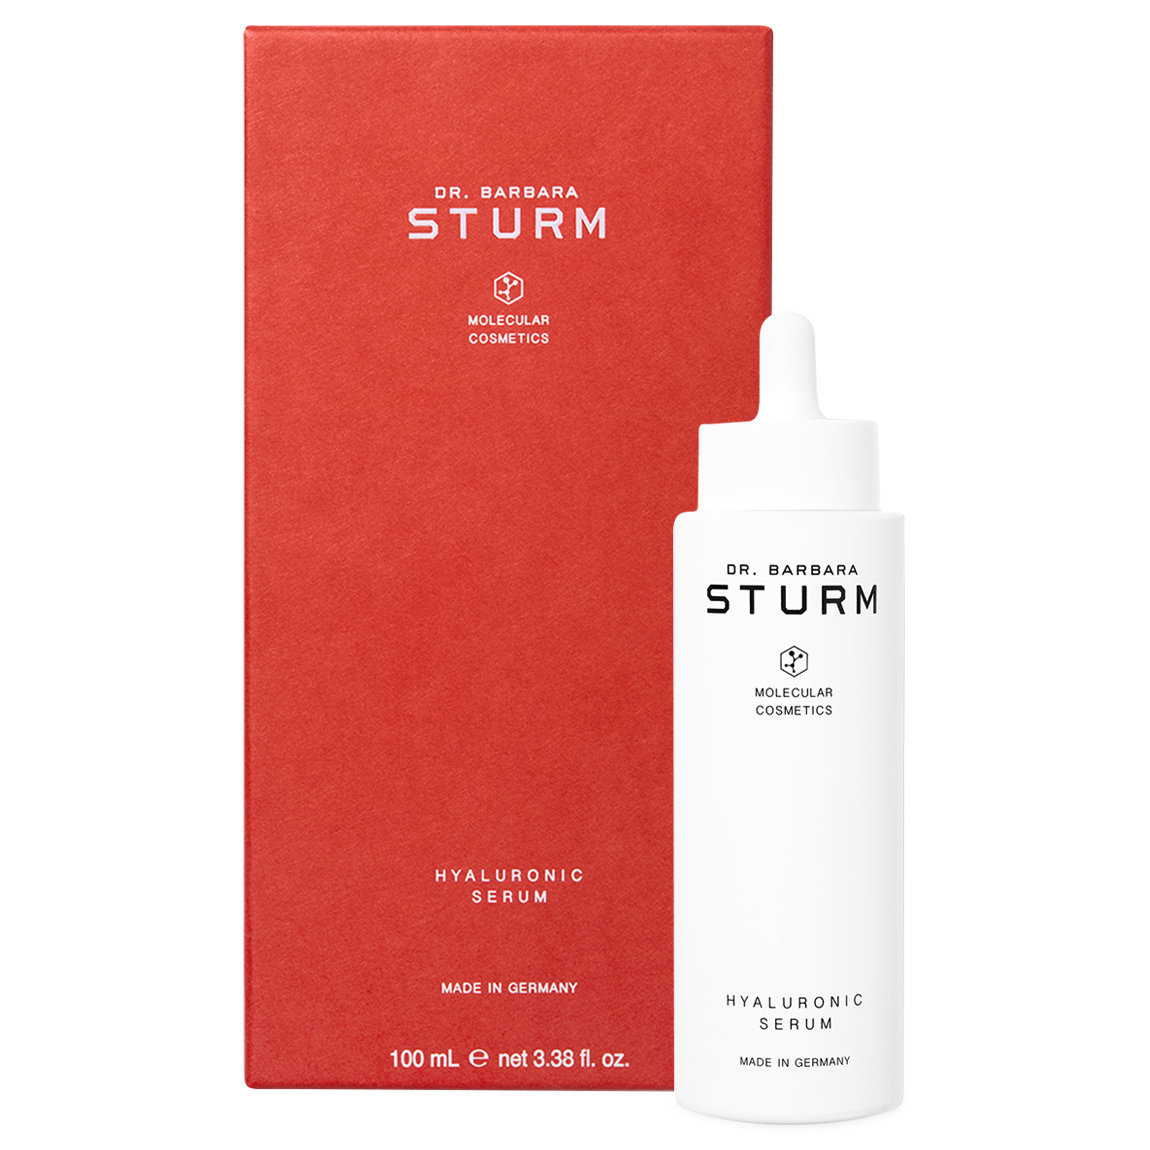 Dr. Barbara Sturm Limited Edition Hyaluronic Acid Serum product swatch.